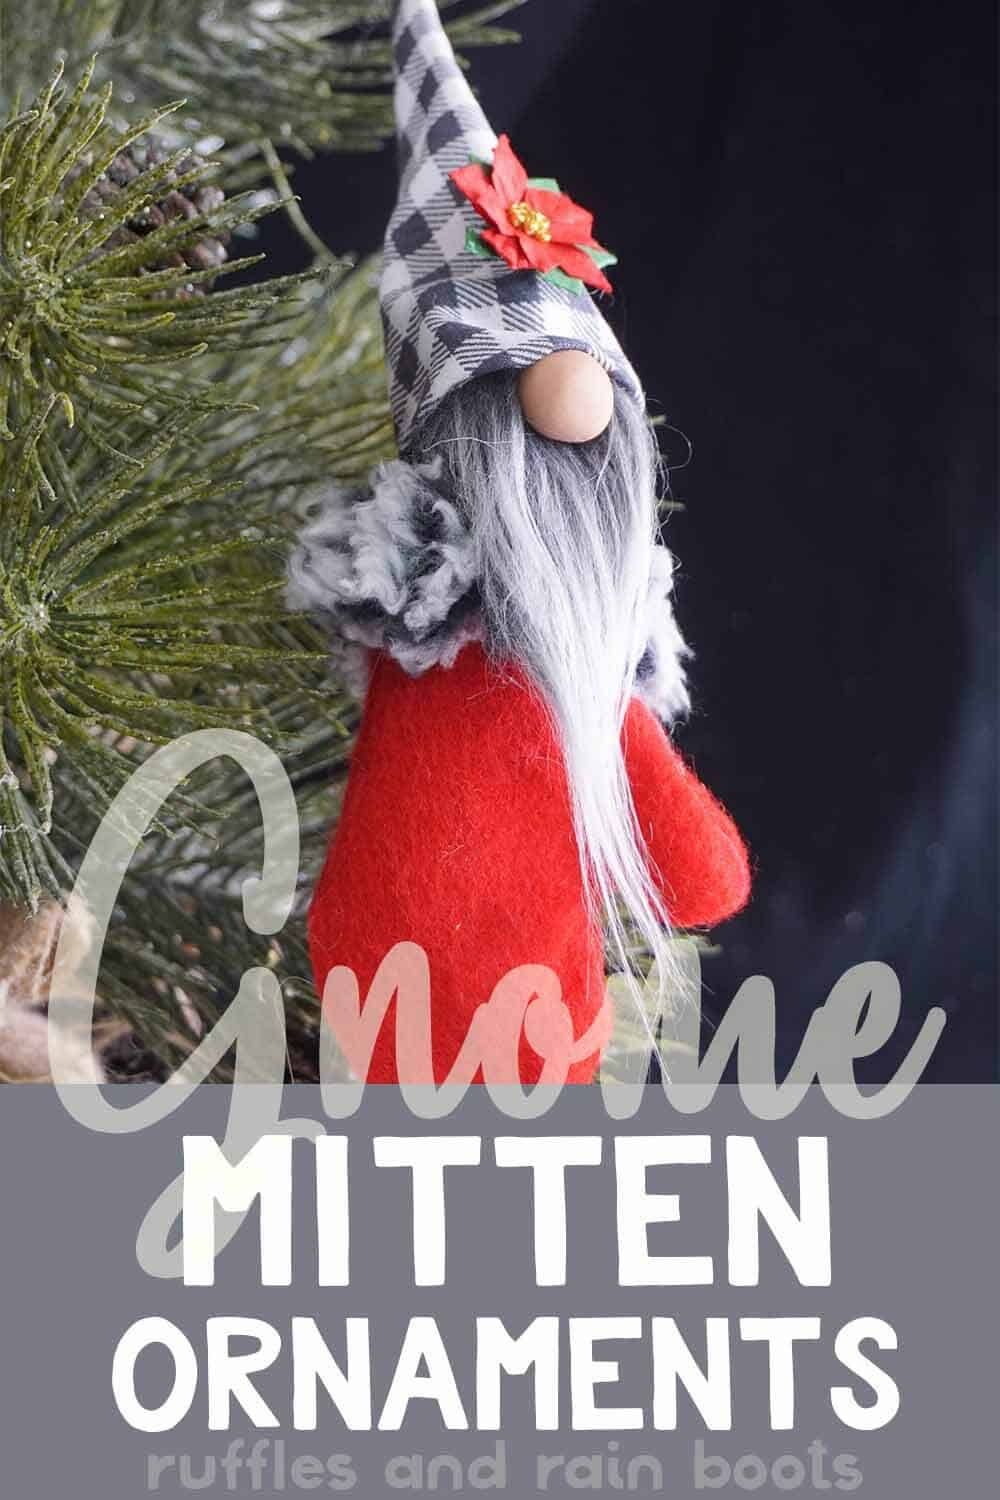 closeup of gnome in a mitten for a christmas ornament with text which reads gnome mitten ornaments